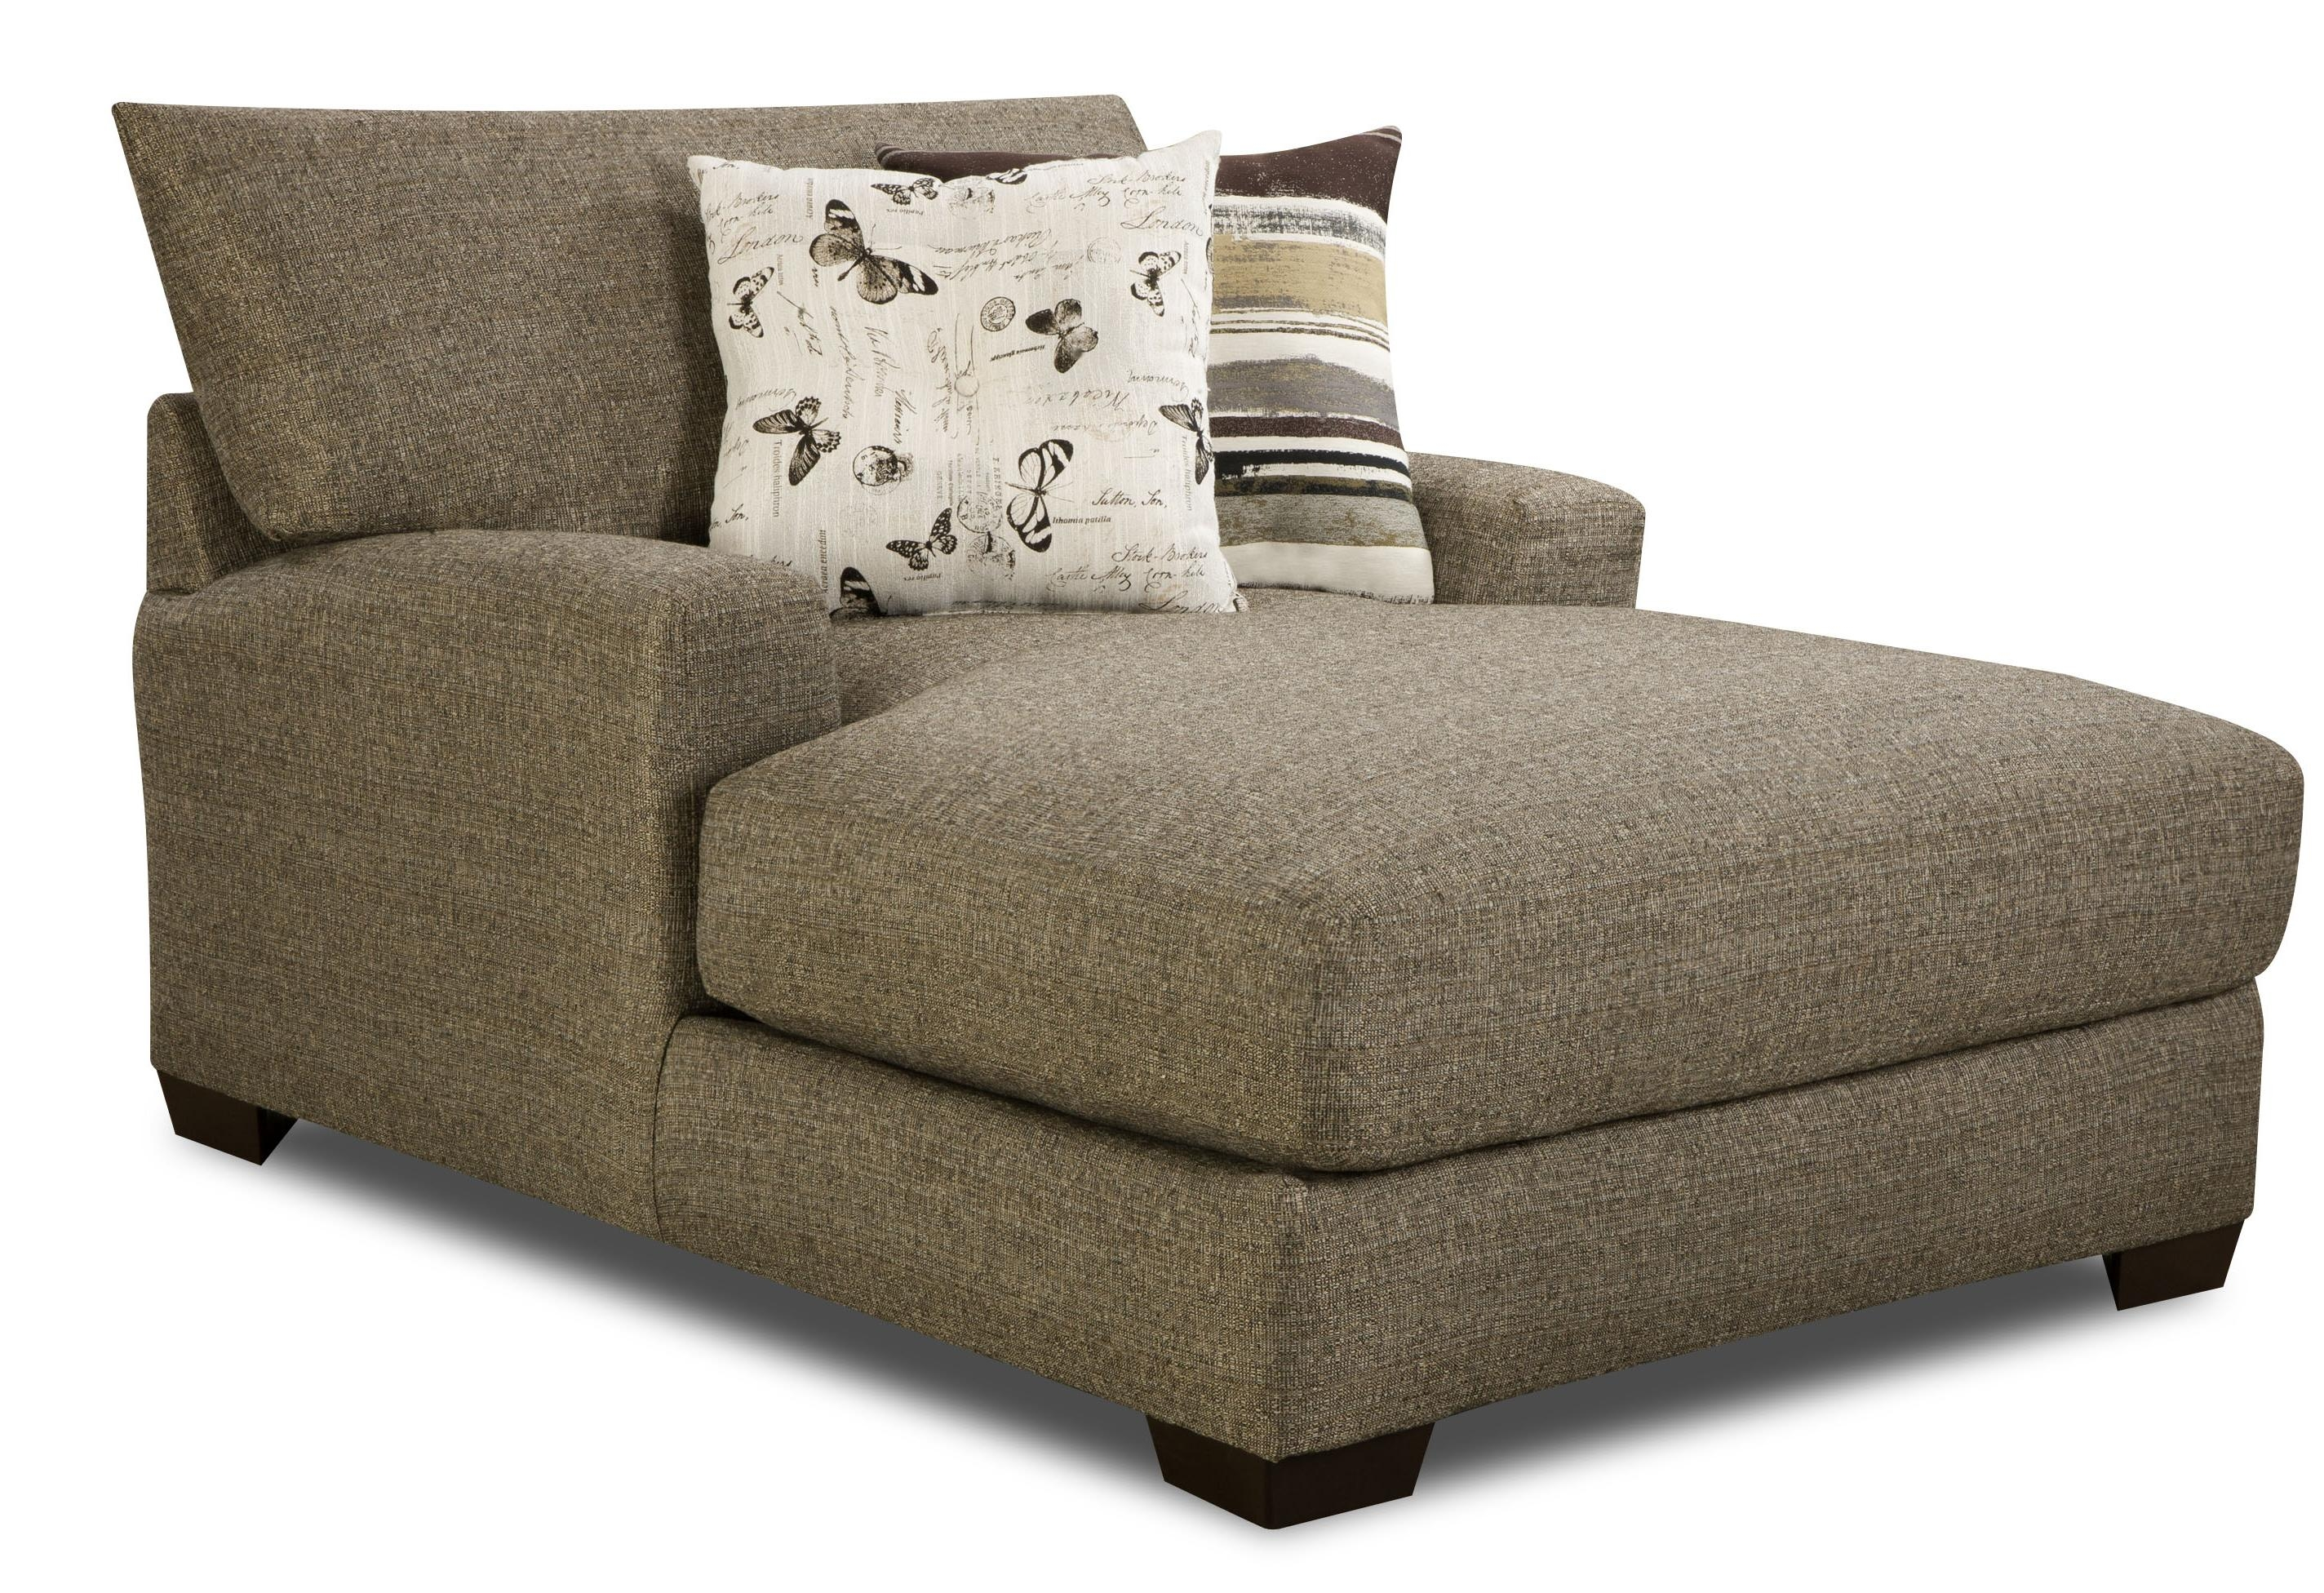 Furniture Microfiber Chaise Lounge For Comfortable Sofa Design Inside Big Sofa Chairs (Image 7 of 15)